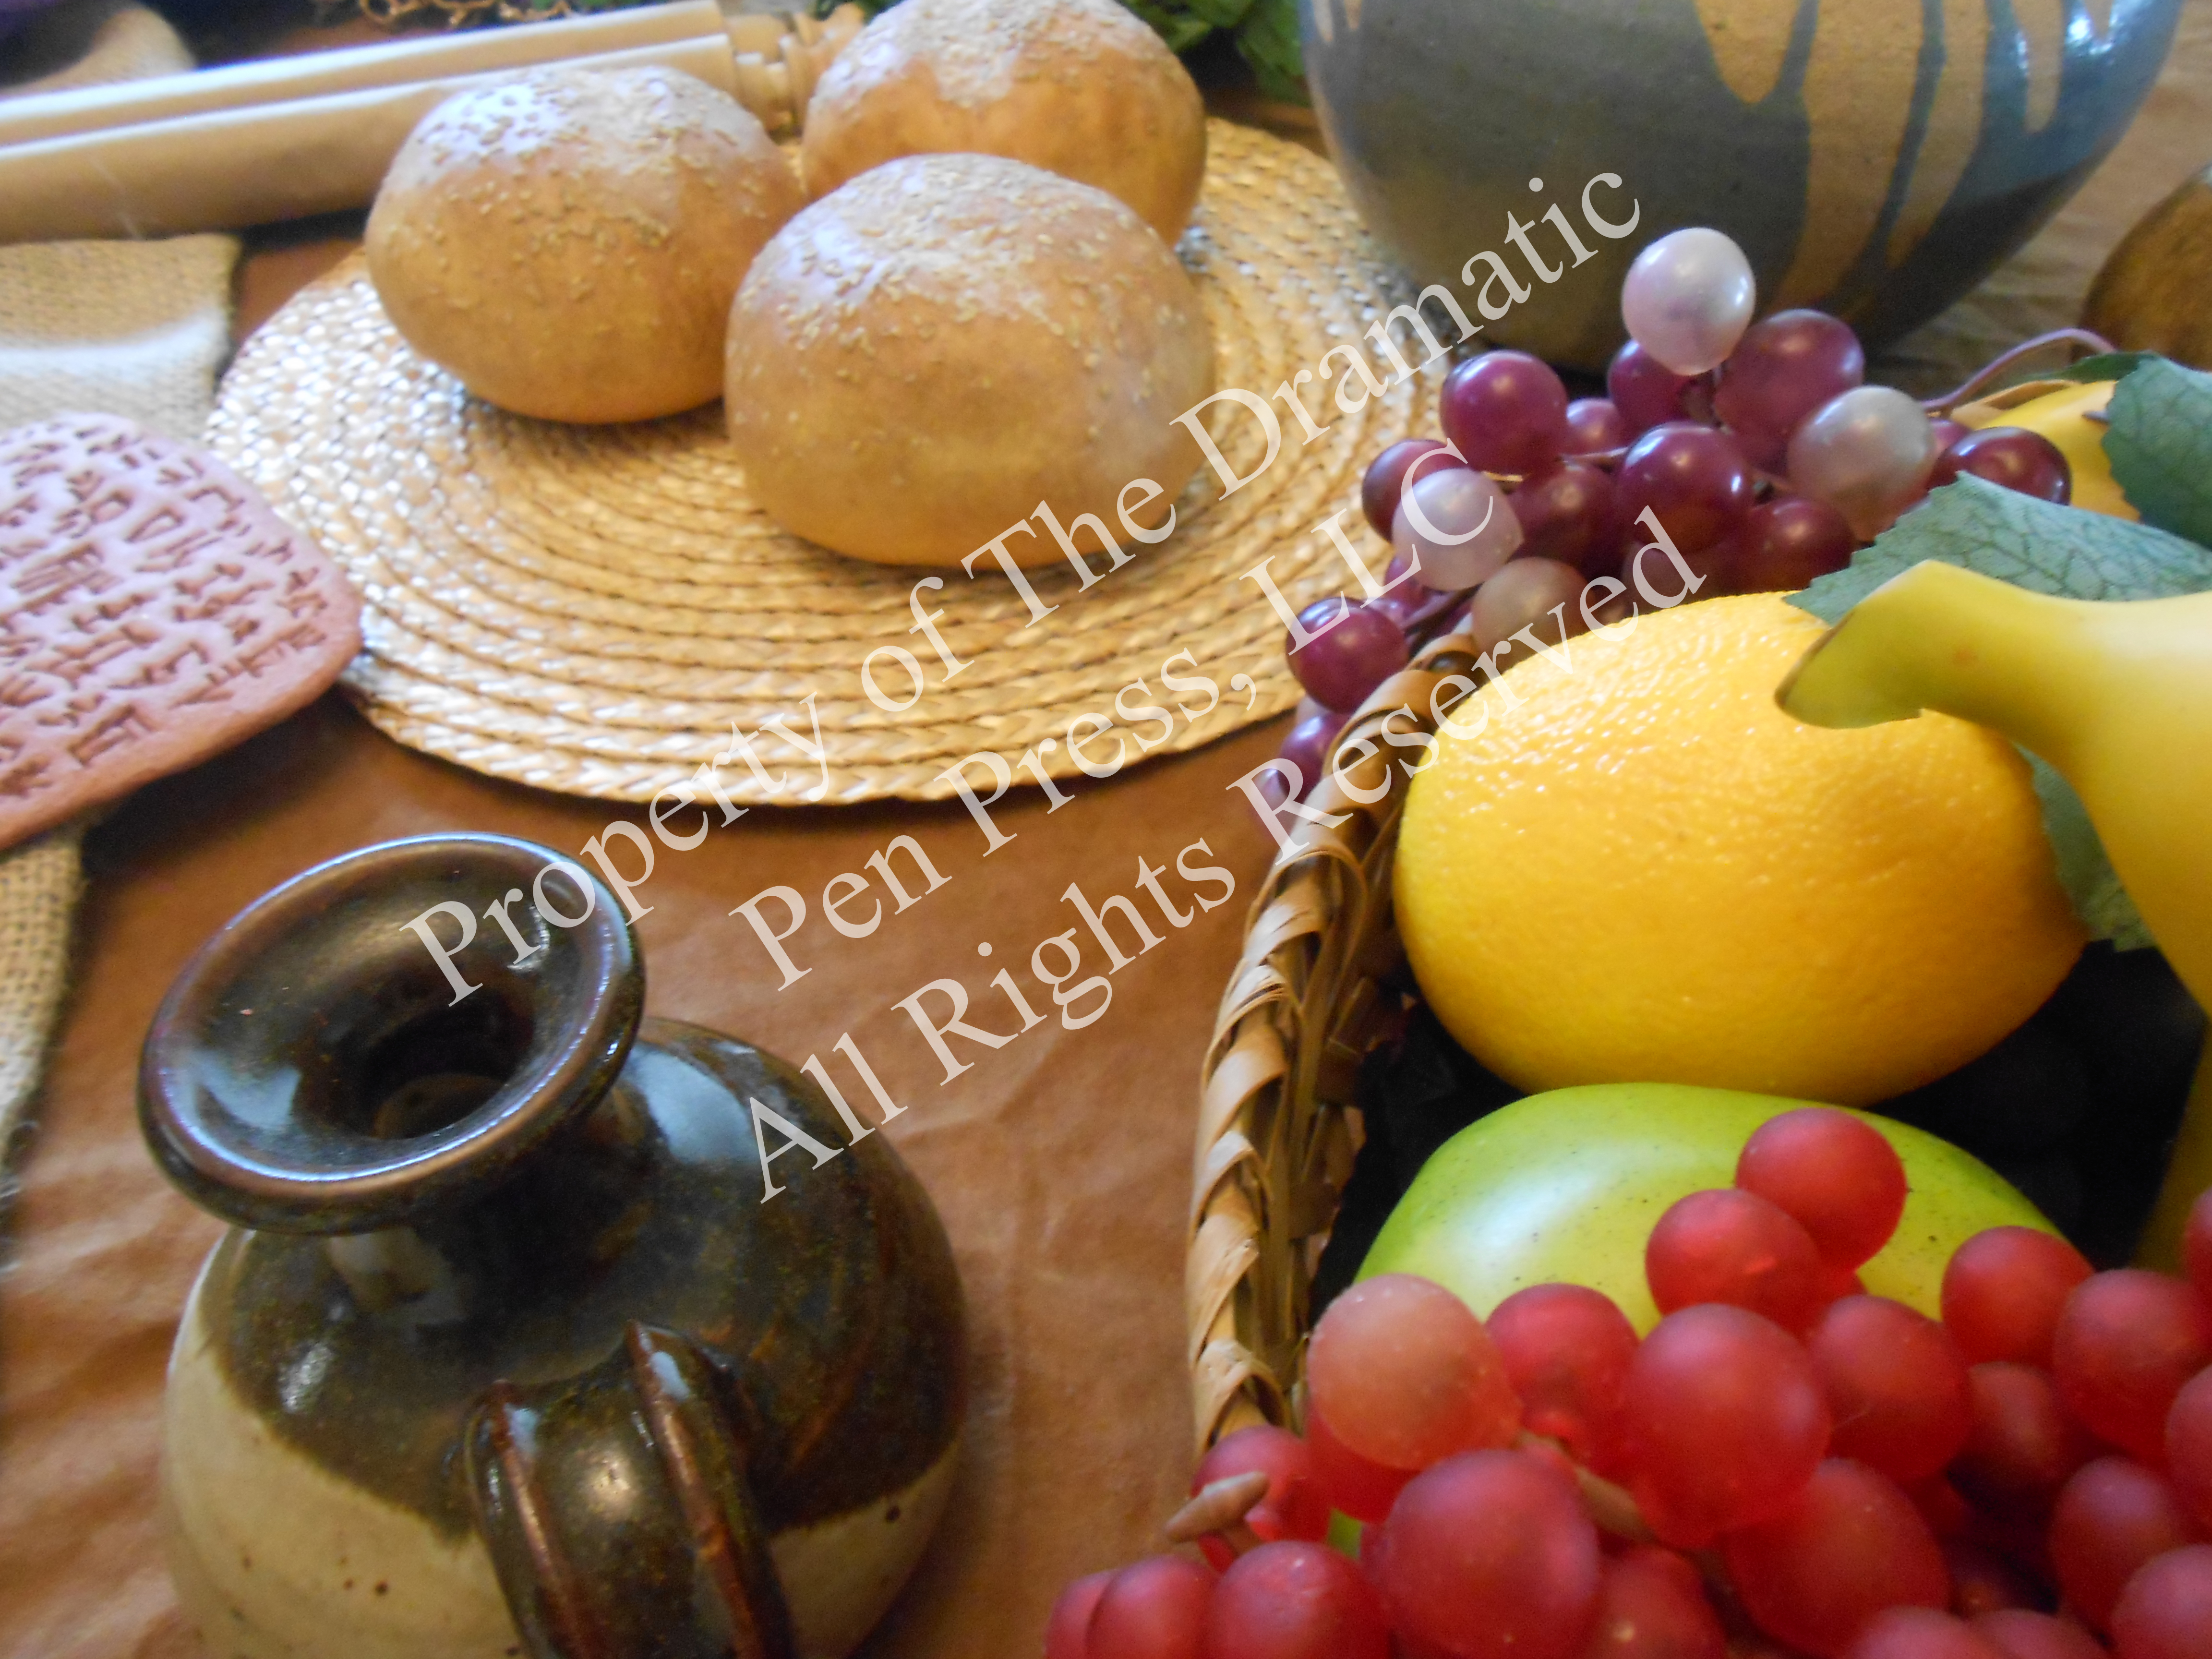 Fruit and Bread Closeup